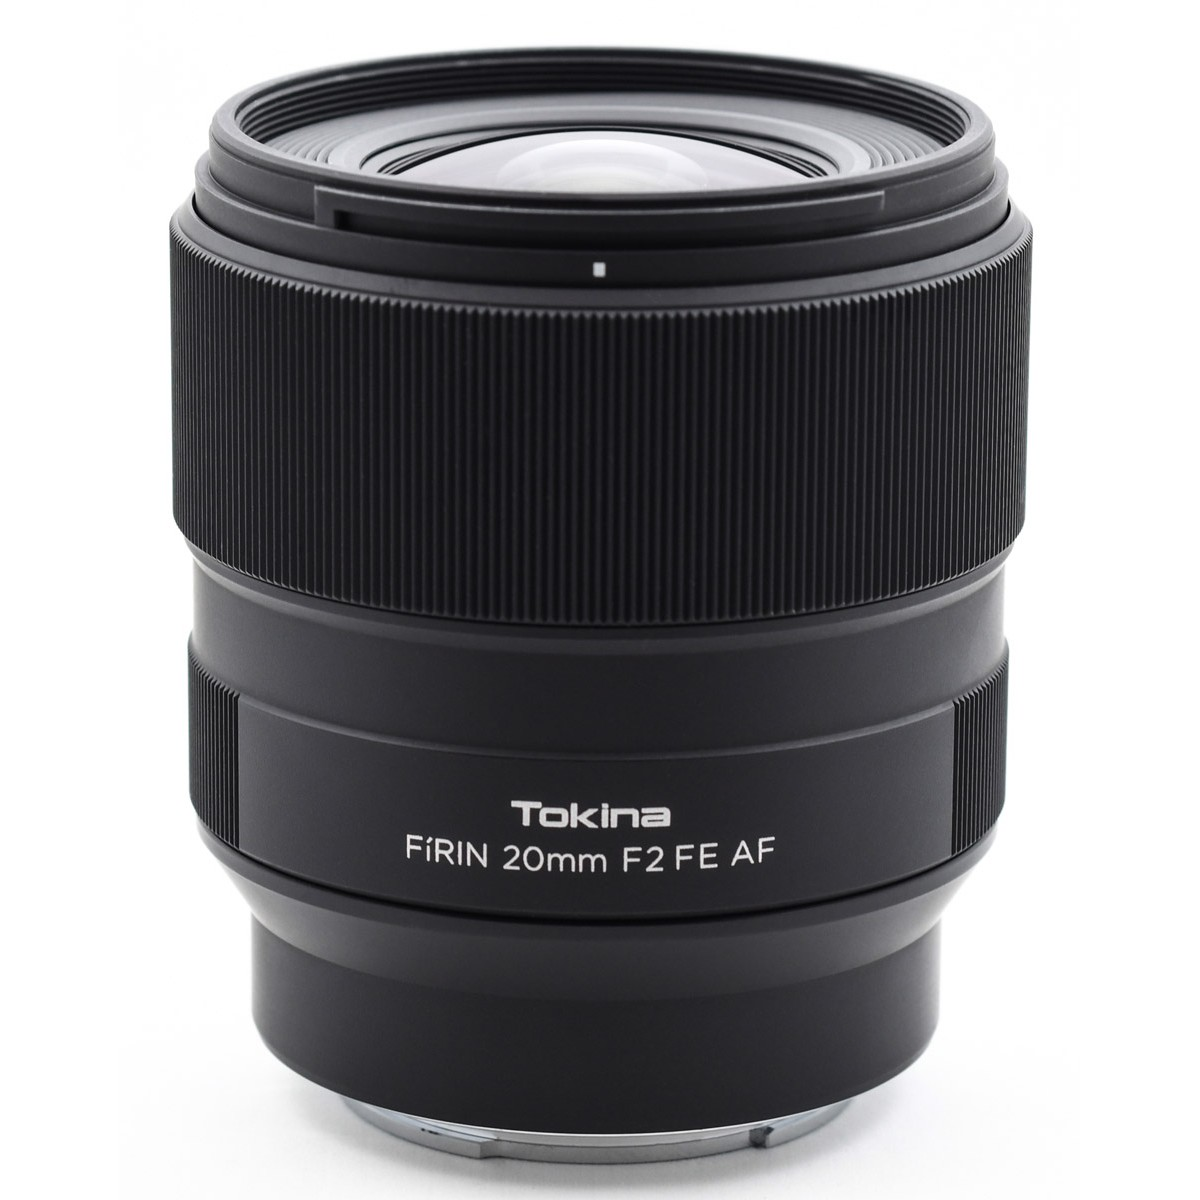 TOKINA FIRIN 20mm F2 FE